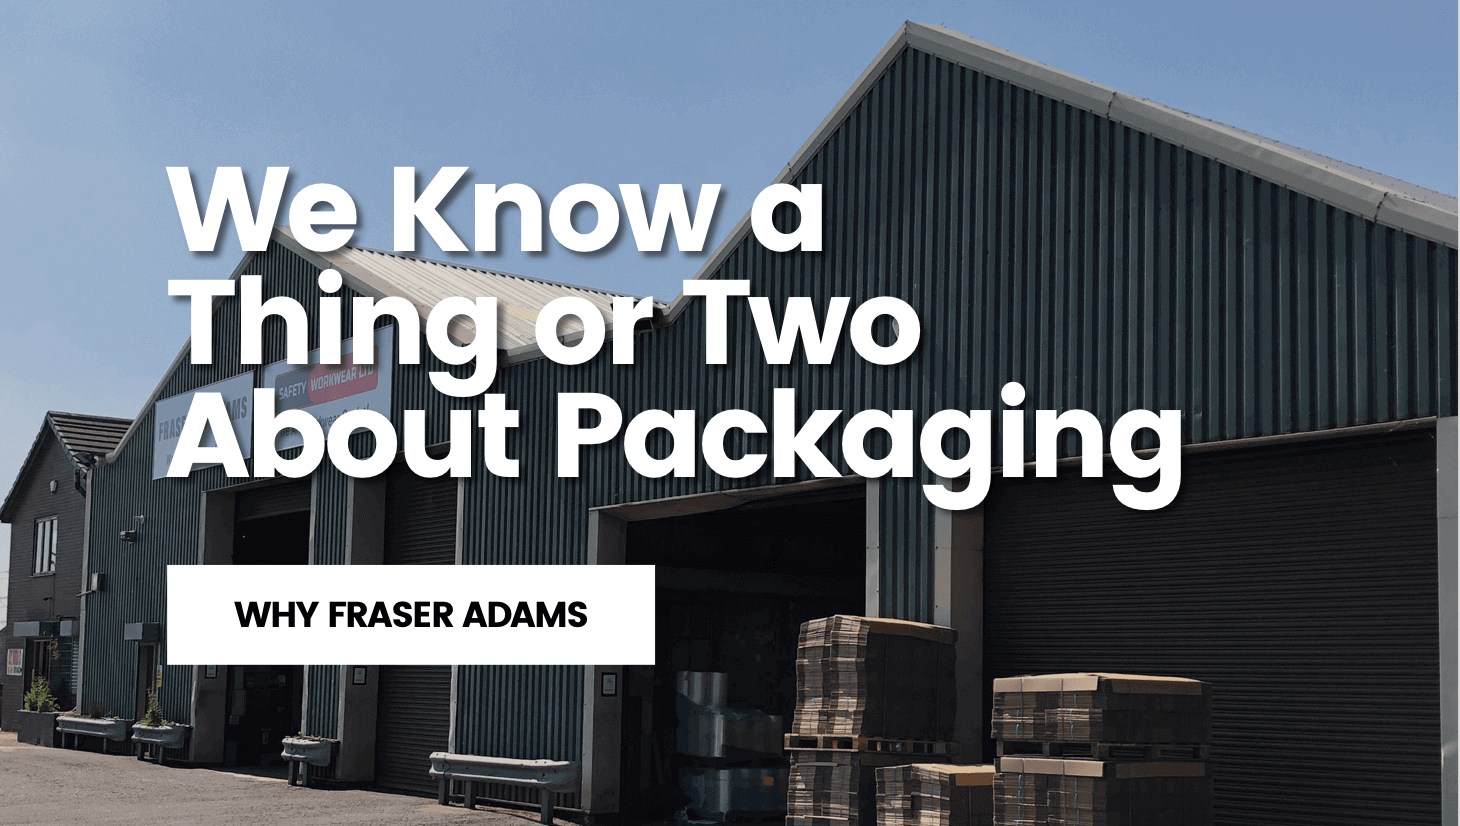 We Know a Thing or Two About Packaging